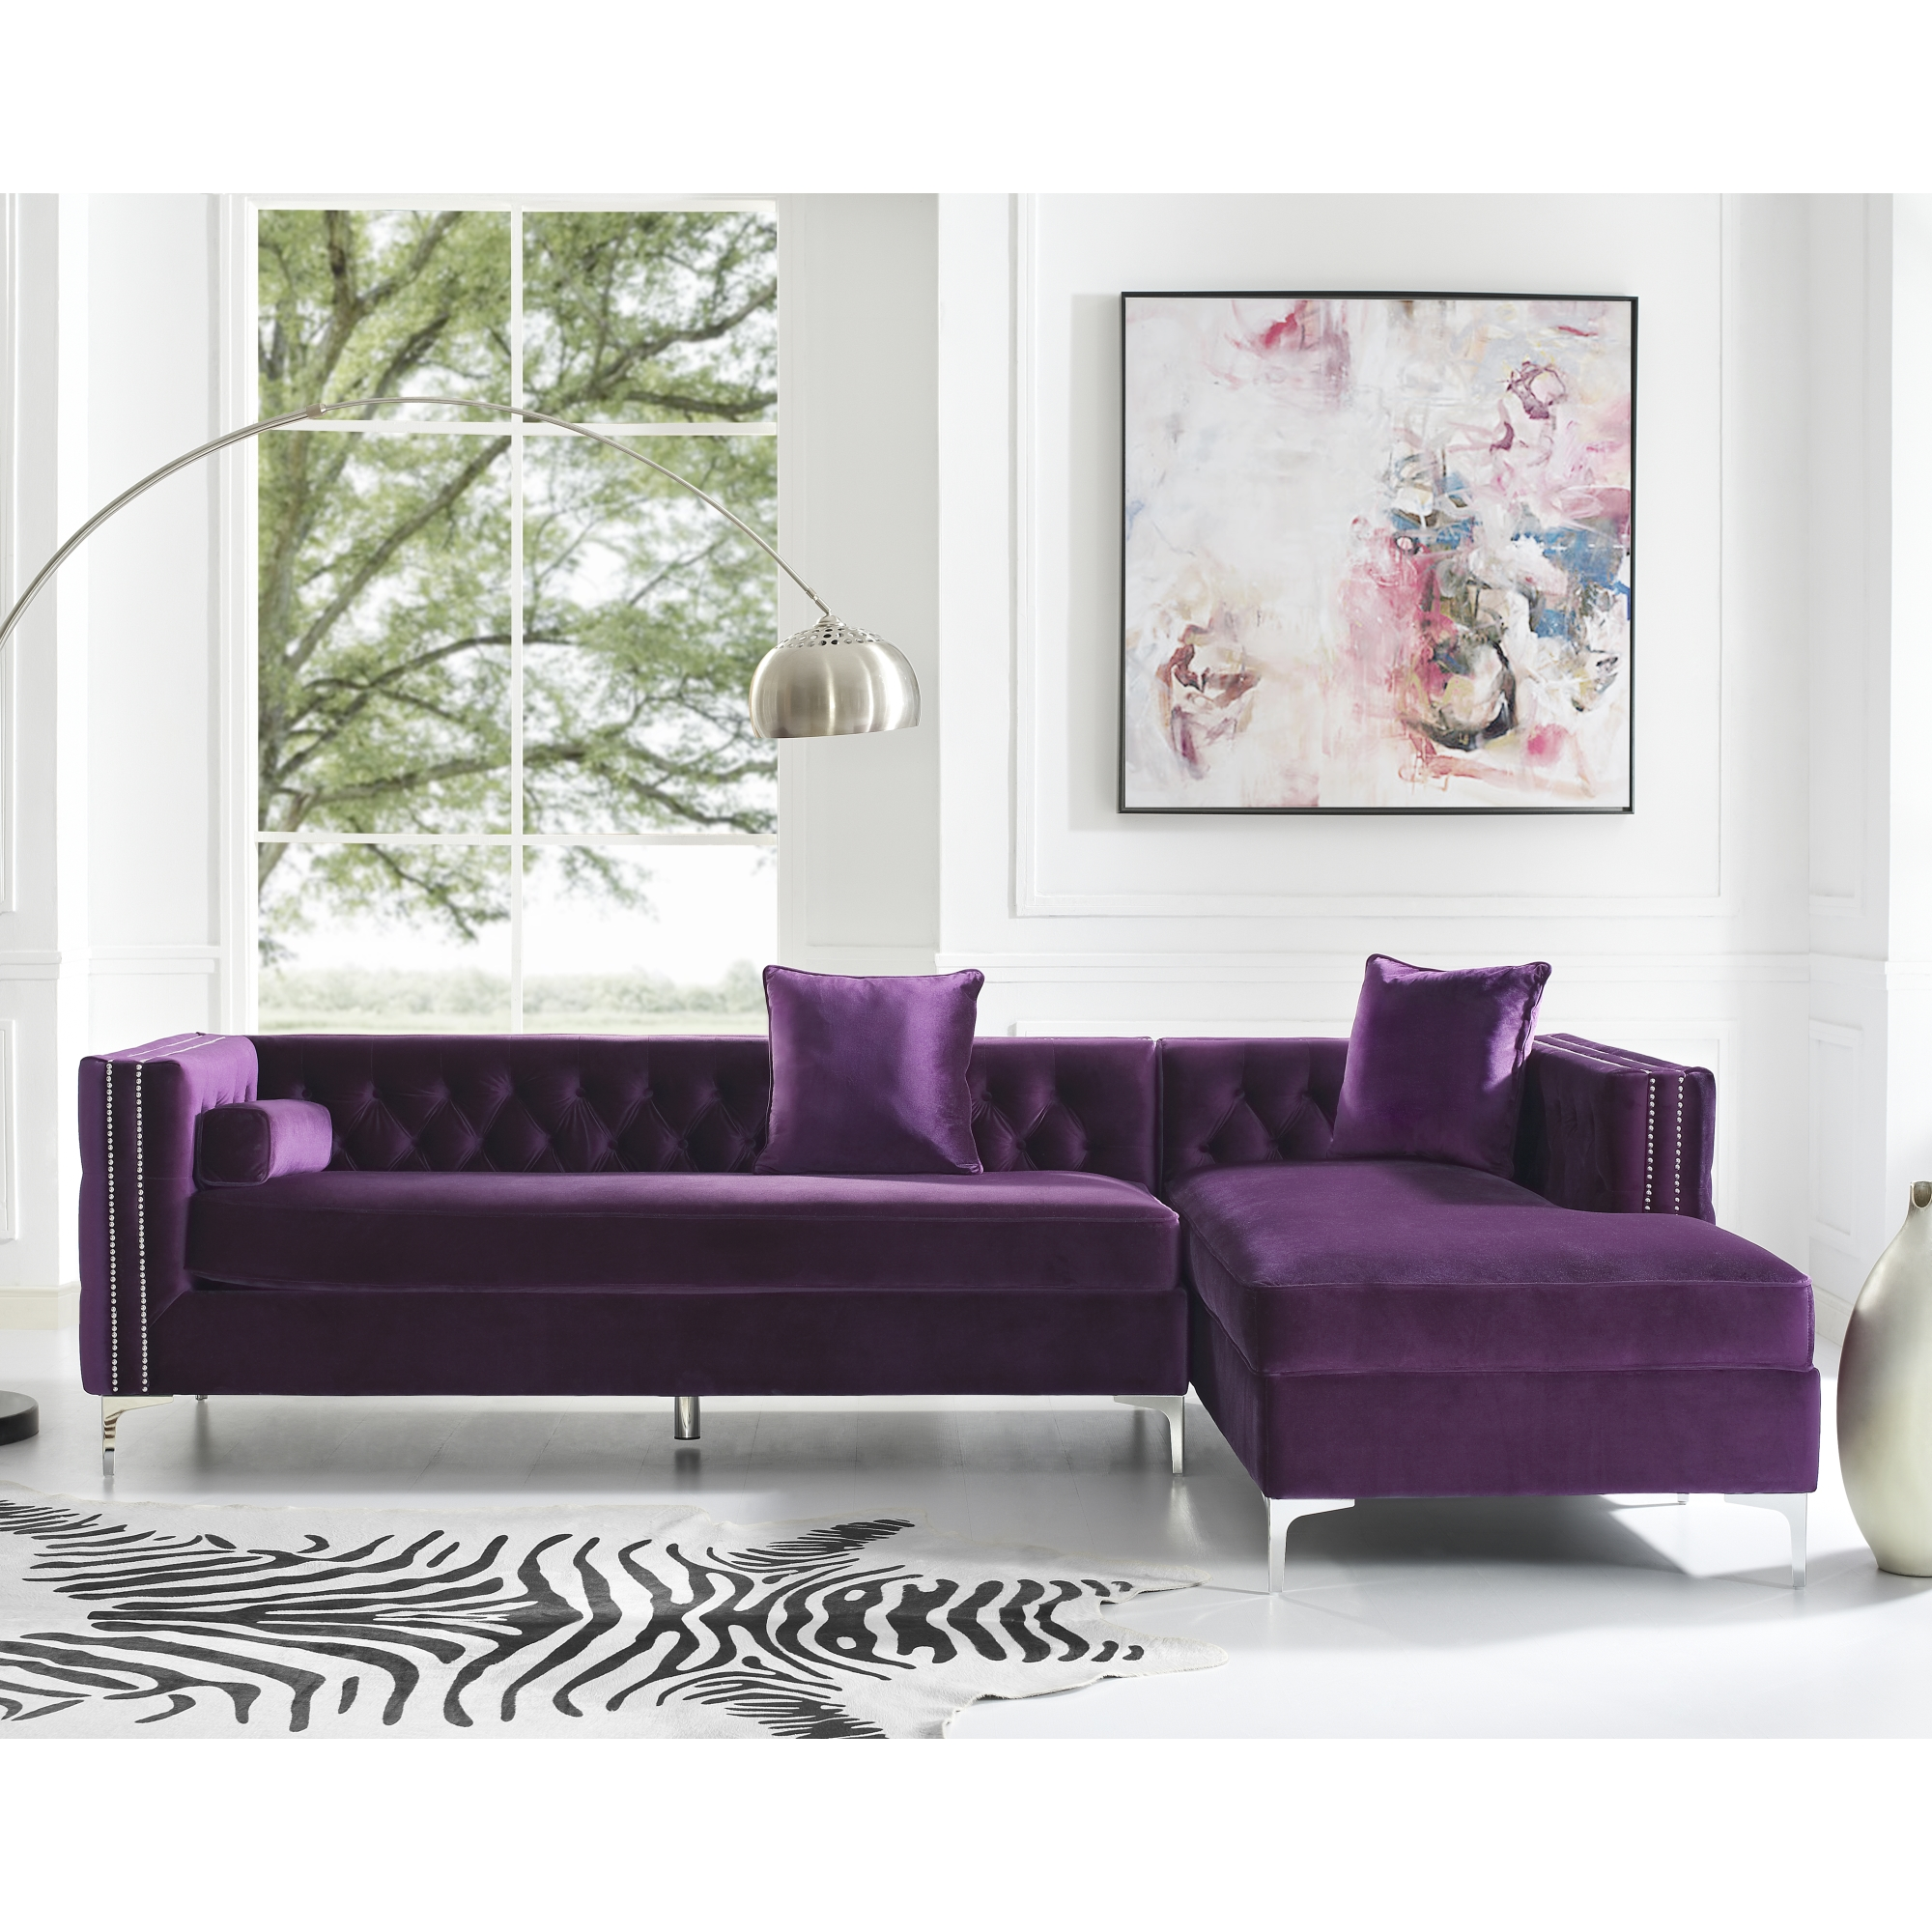 Picture of: Inspired Home Craig Purple Velvet Chaise Sectional Sofa 115 Right Facing Button Tufted Nailhead Trim Purple Walmart Com Walmart Com